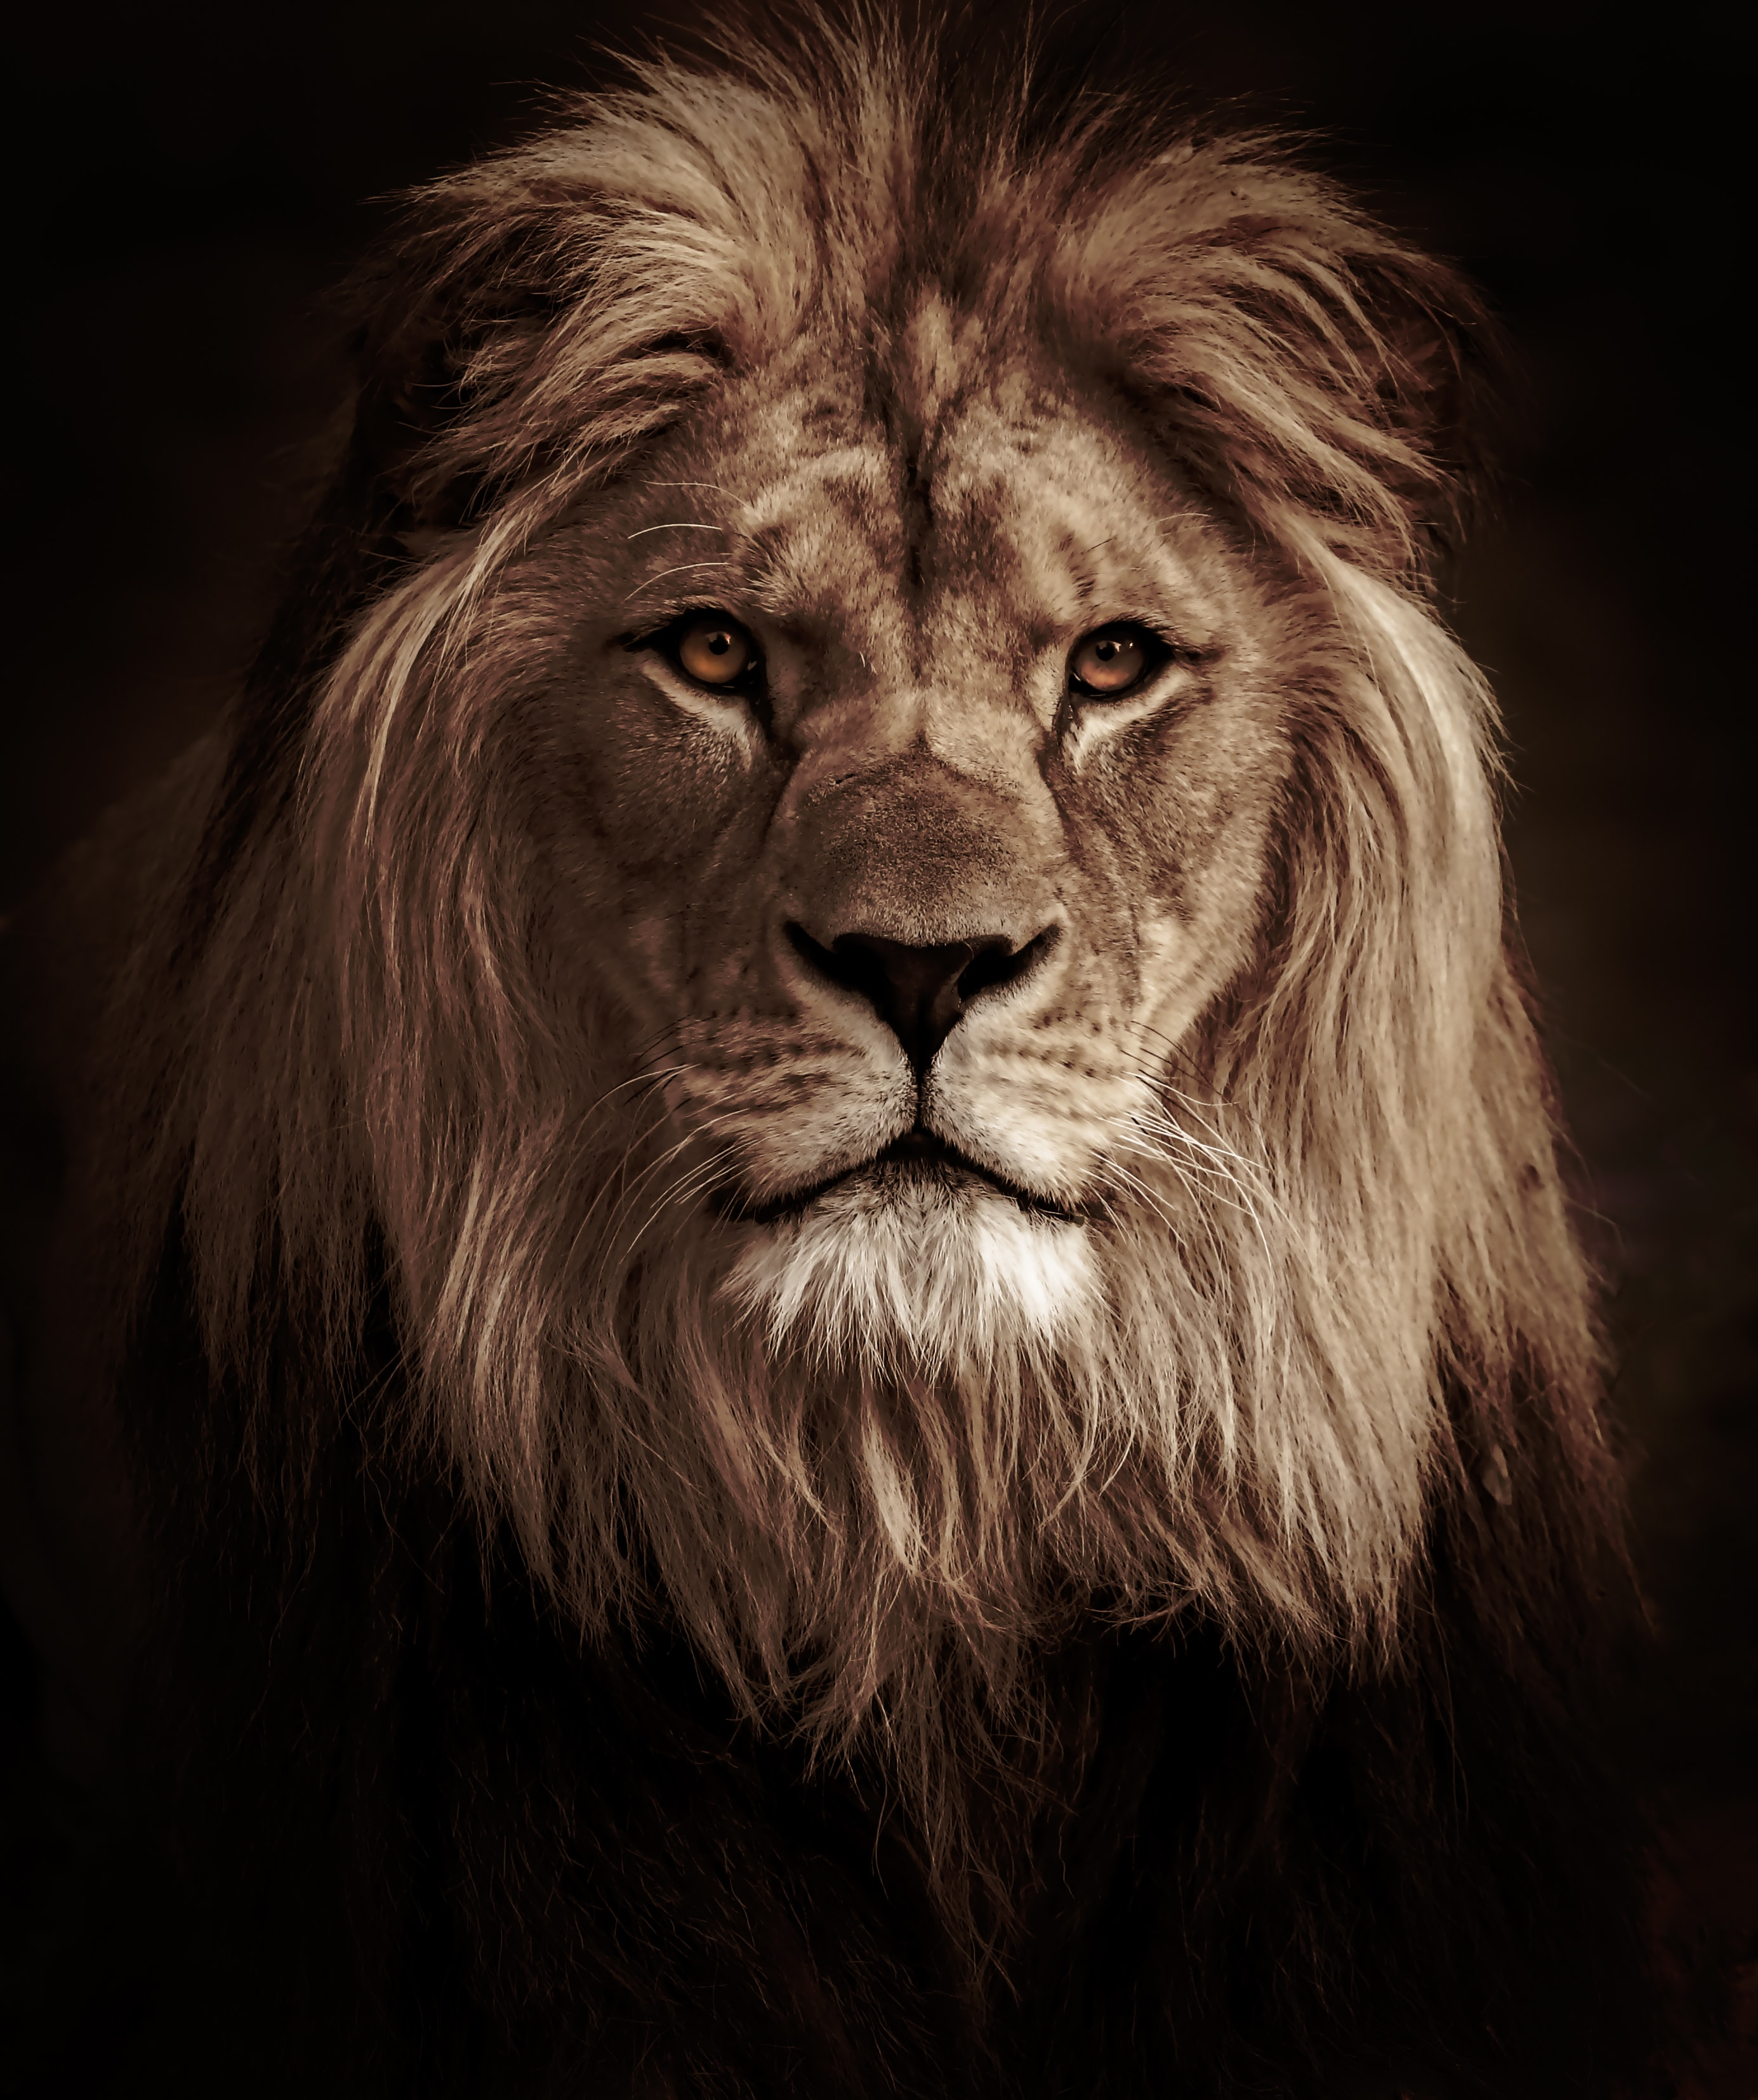 55431 download wallpaper Predator, Animals, Lion, Big Cat, Animal screensavers and pictures for free